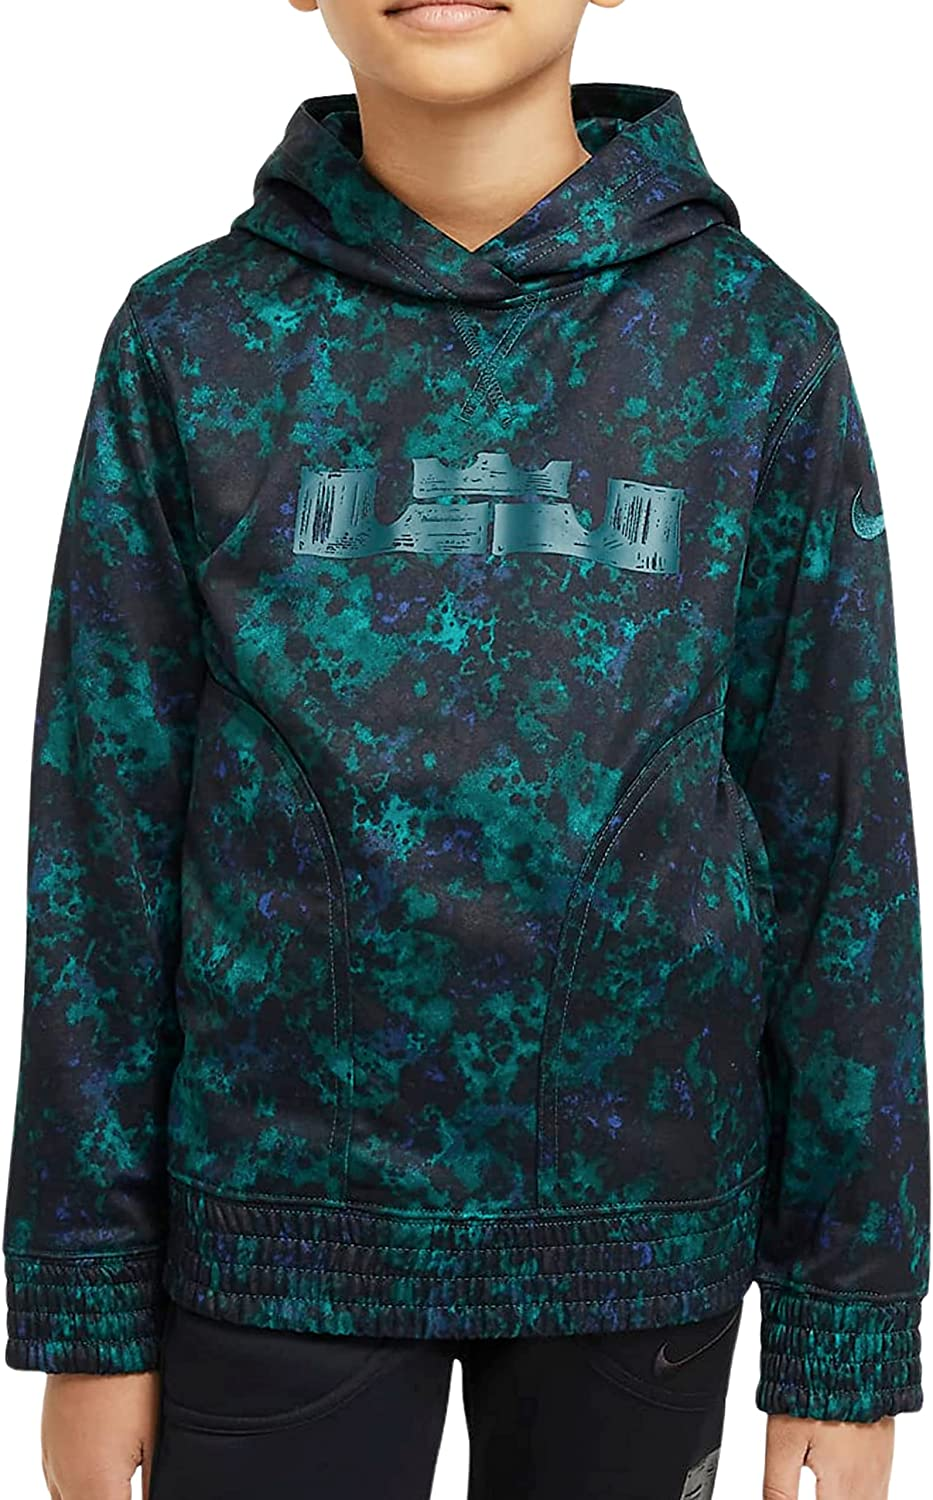 Nike Youth Boys Therma Dri Fit Hoodie Pullover Size Large 13/15 Green